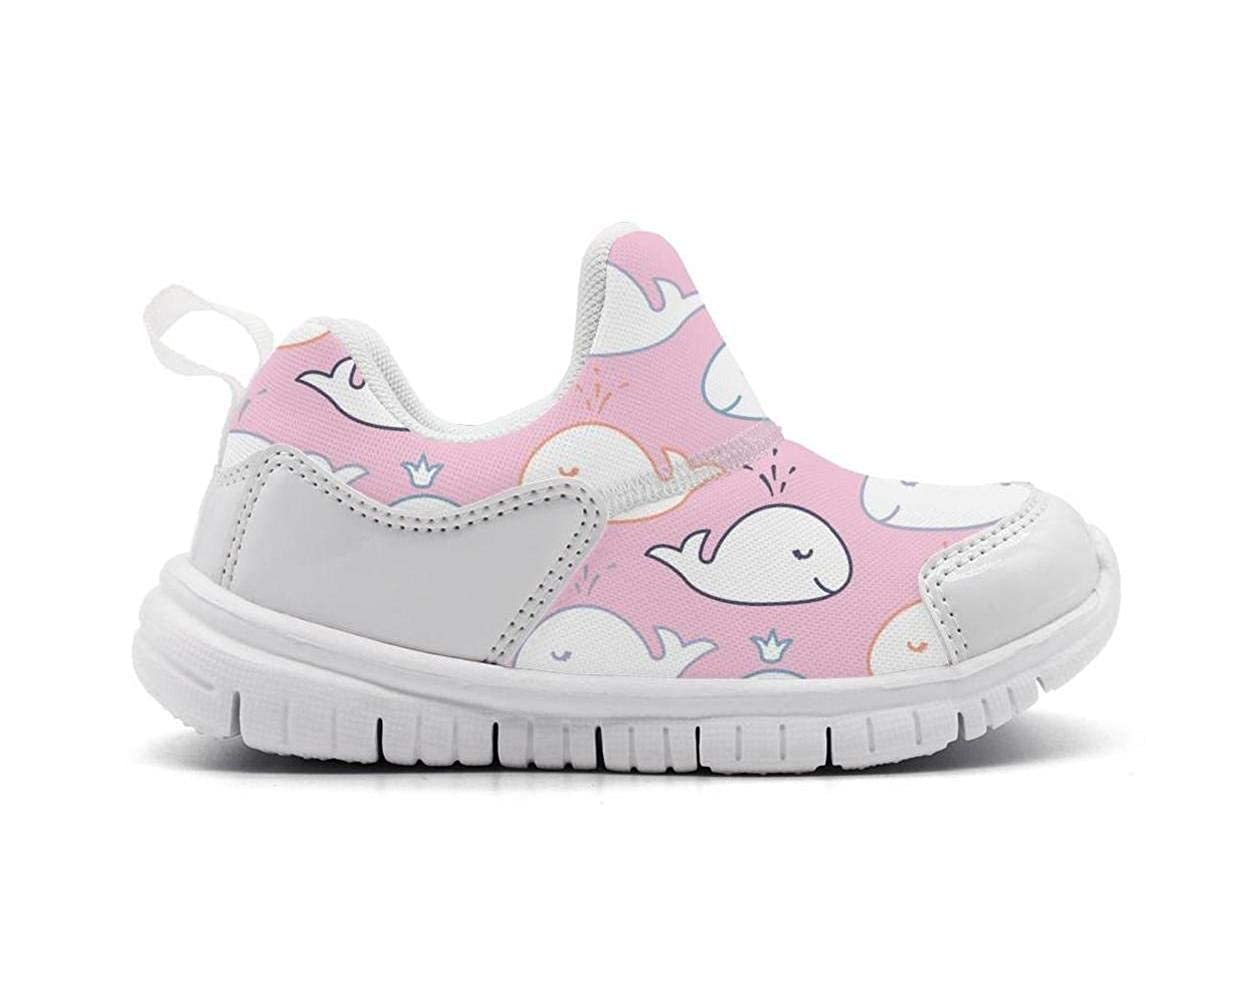 Babys Pink Whale Shark Unicorn Fashion Breathable Mesh Sneakers Running Shoe